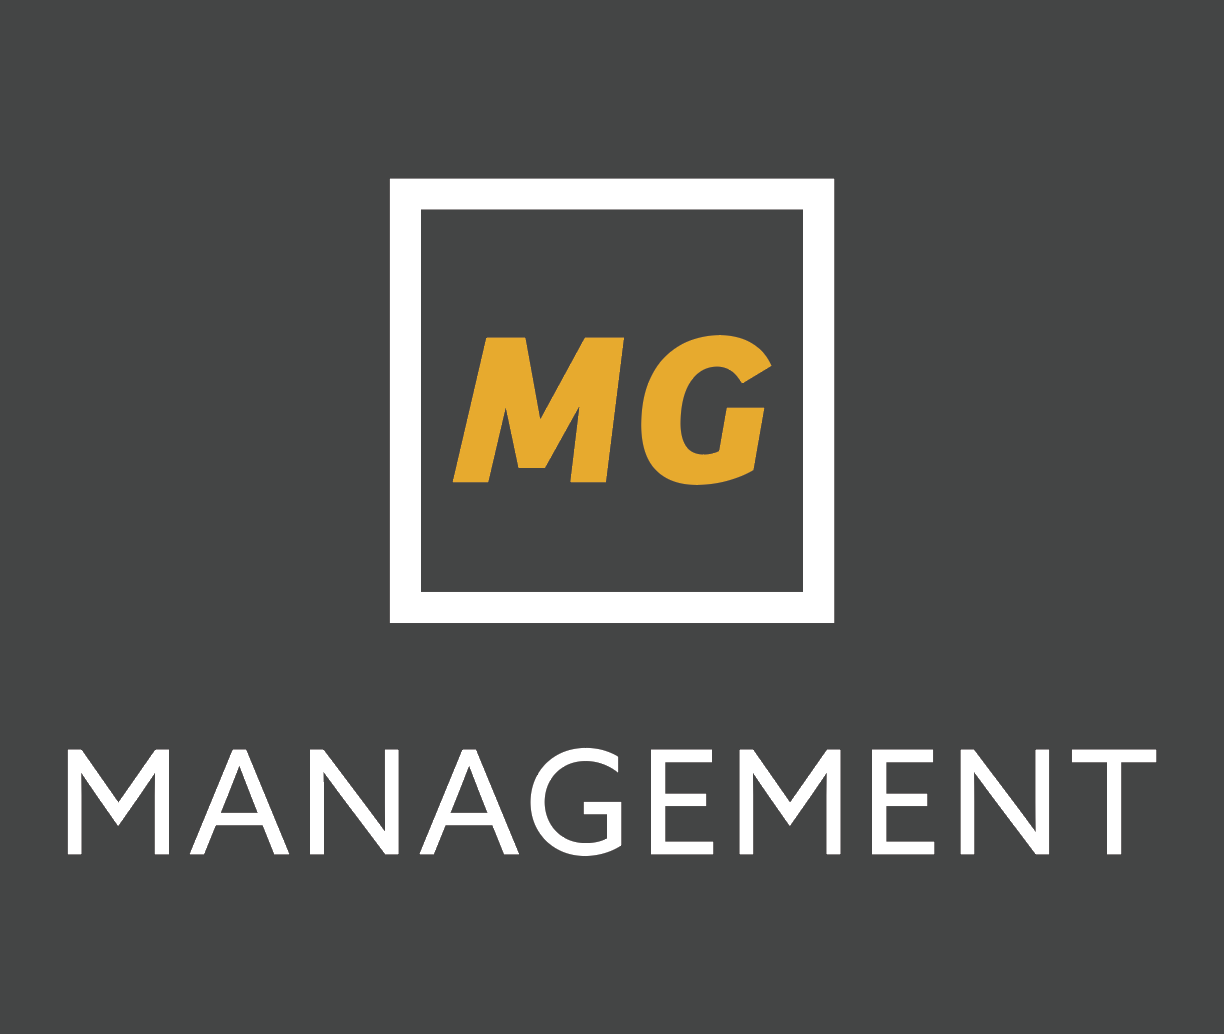 MANAGEMENT - The Management offer is directed to the companies that seek a professional for running a training centre, personal management, team coaching.